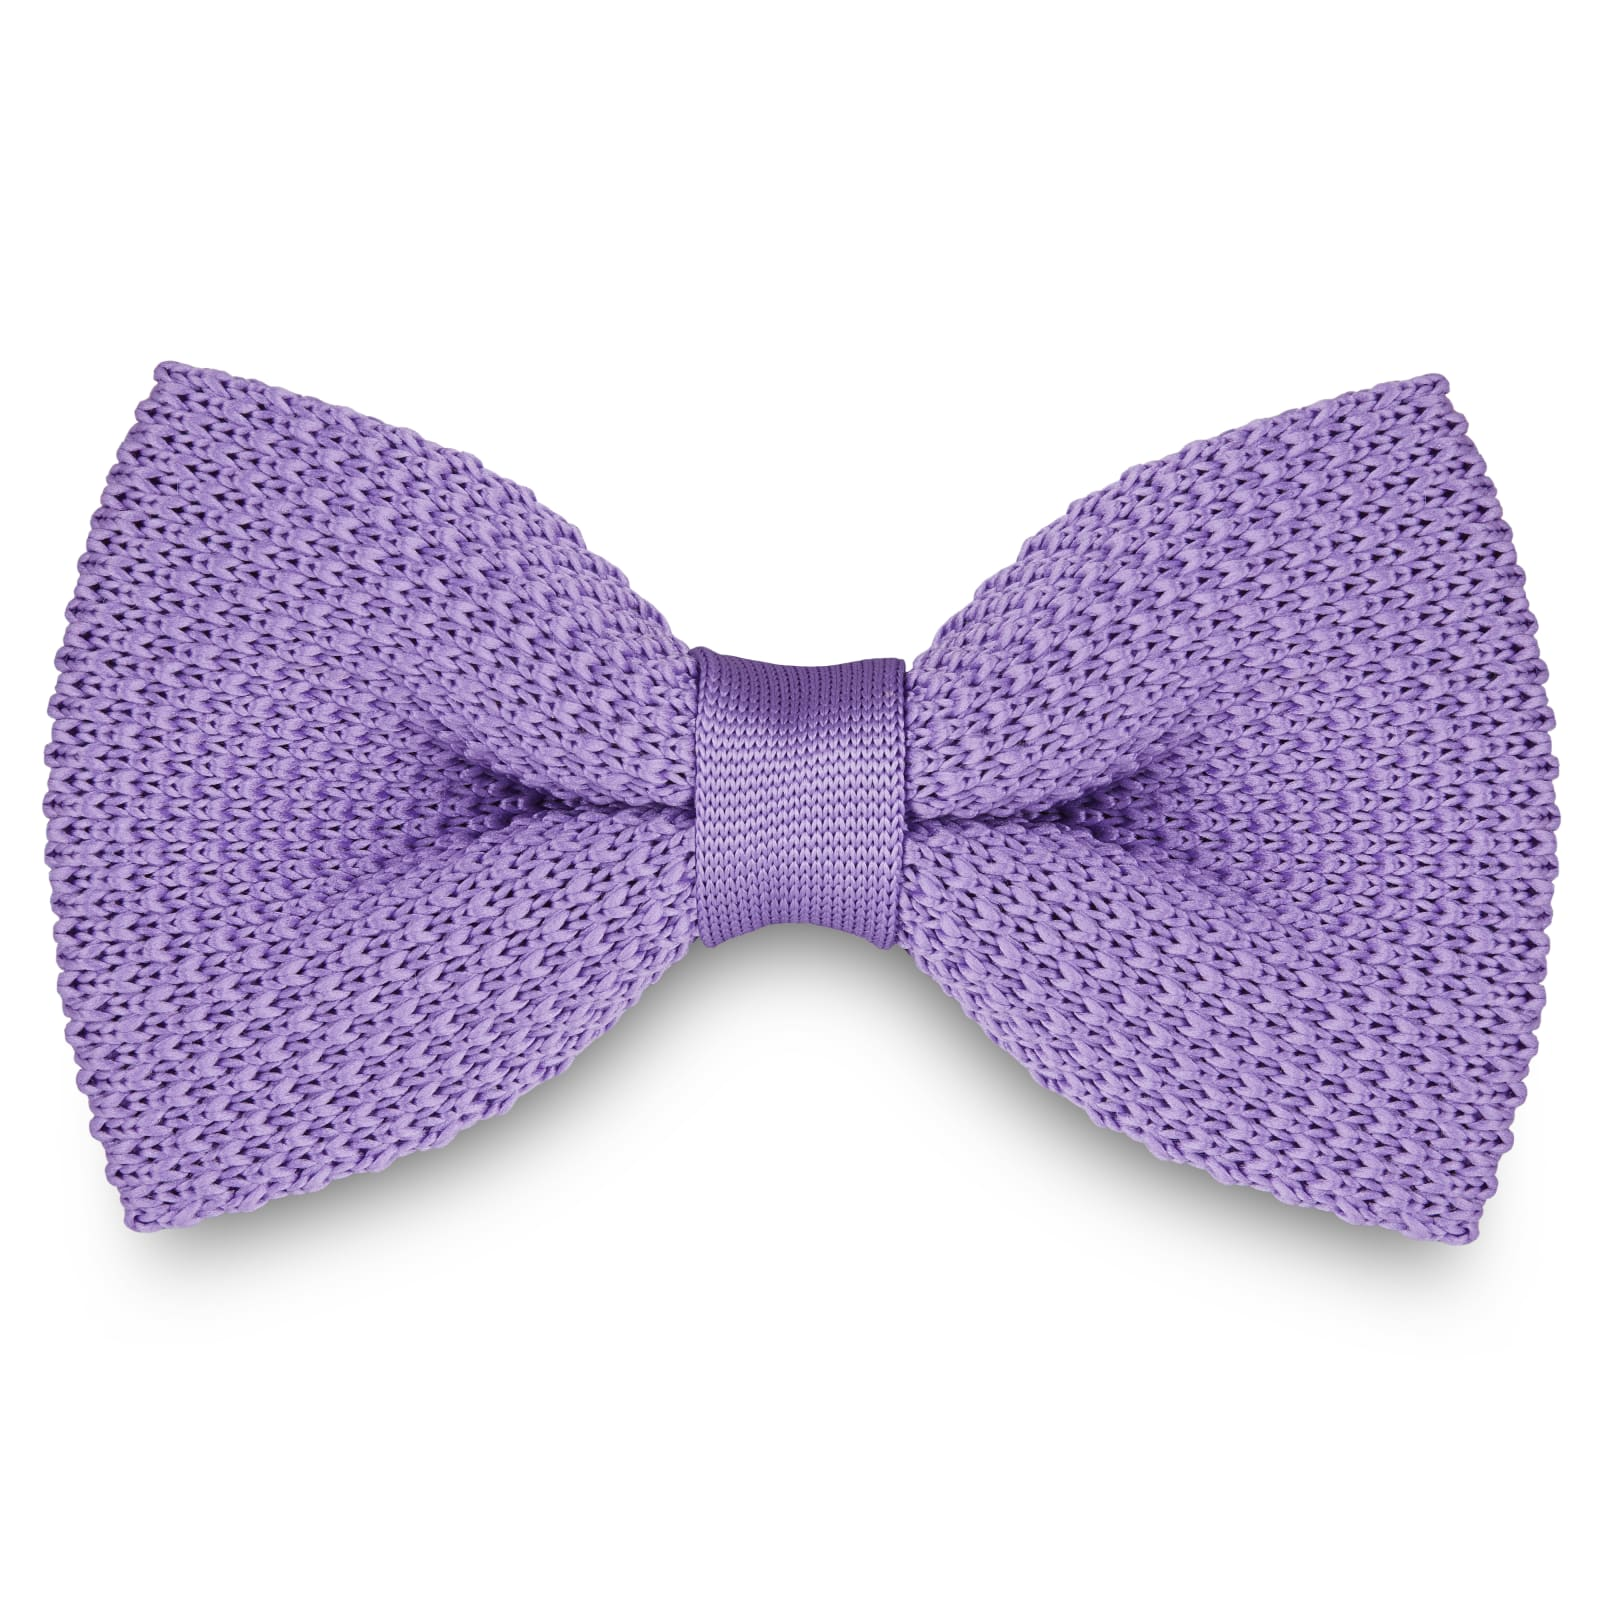 LAVENDER KNITTED BOW TIES